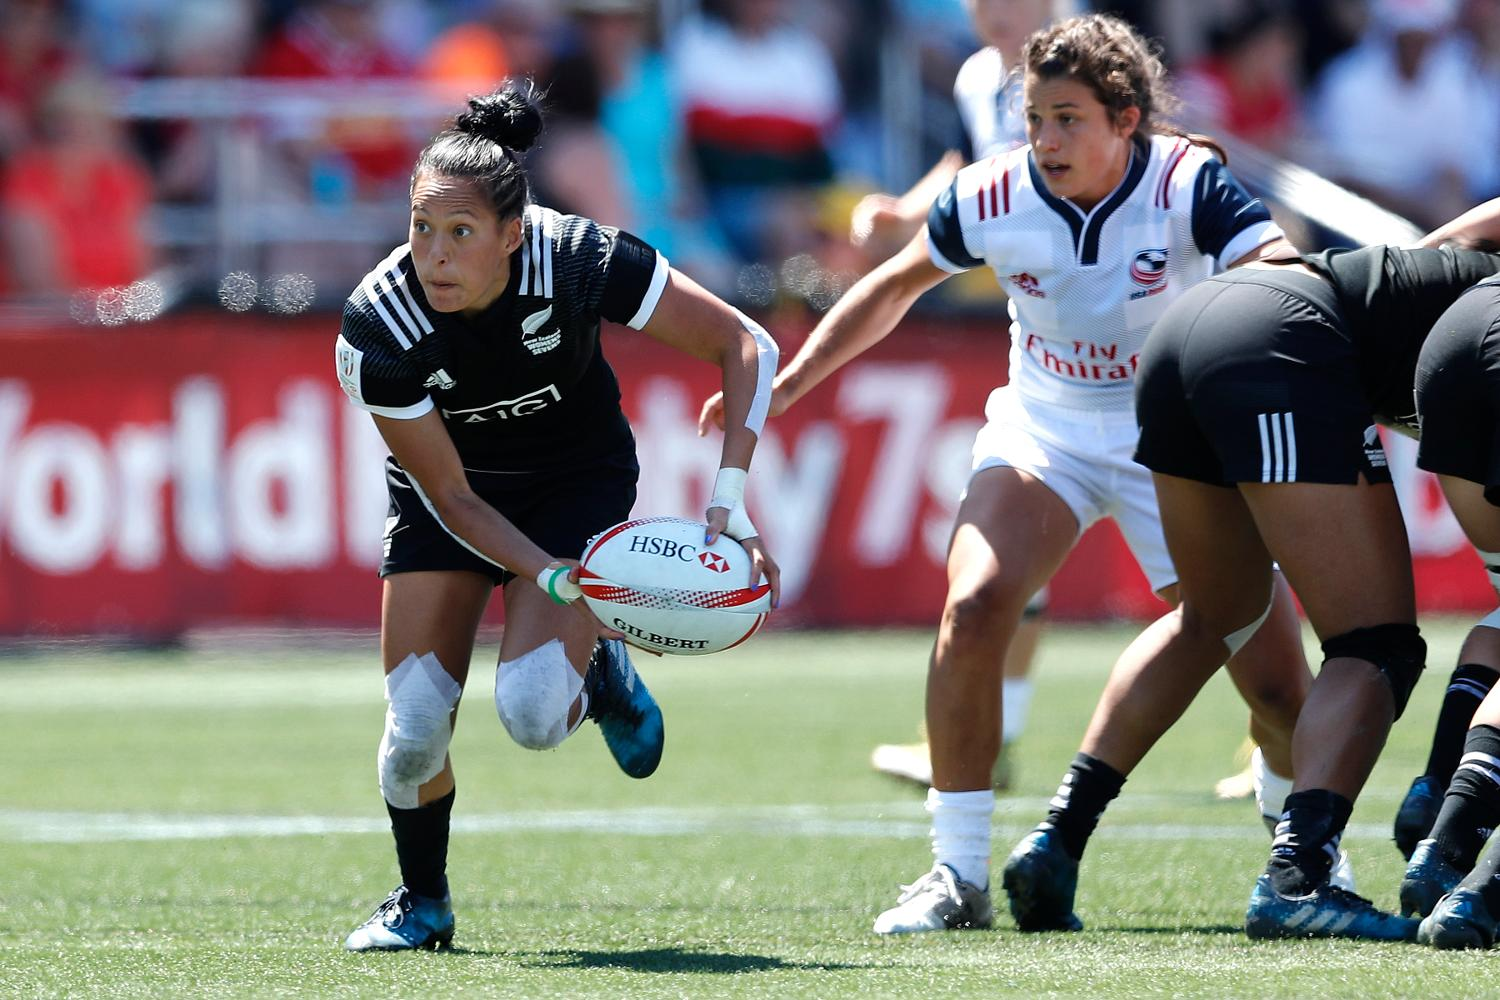 HSBC Sevens Series Langford - Women's